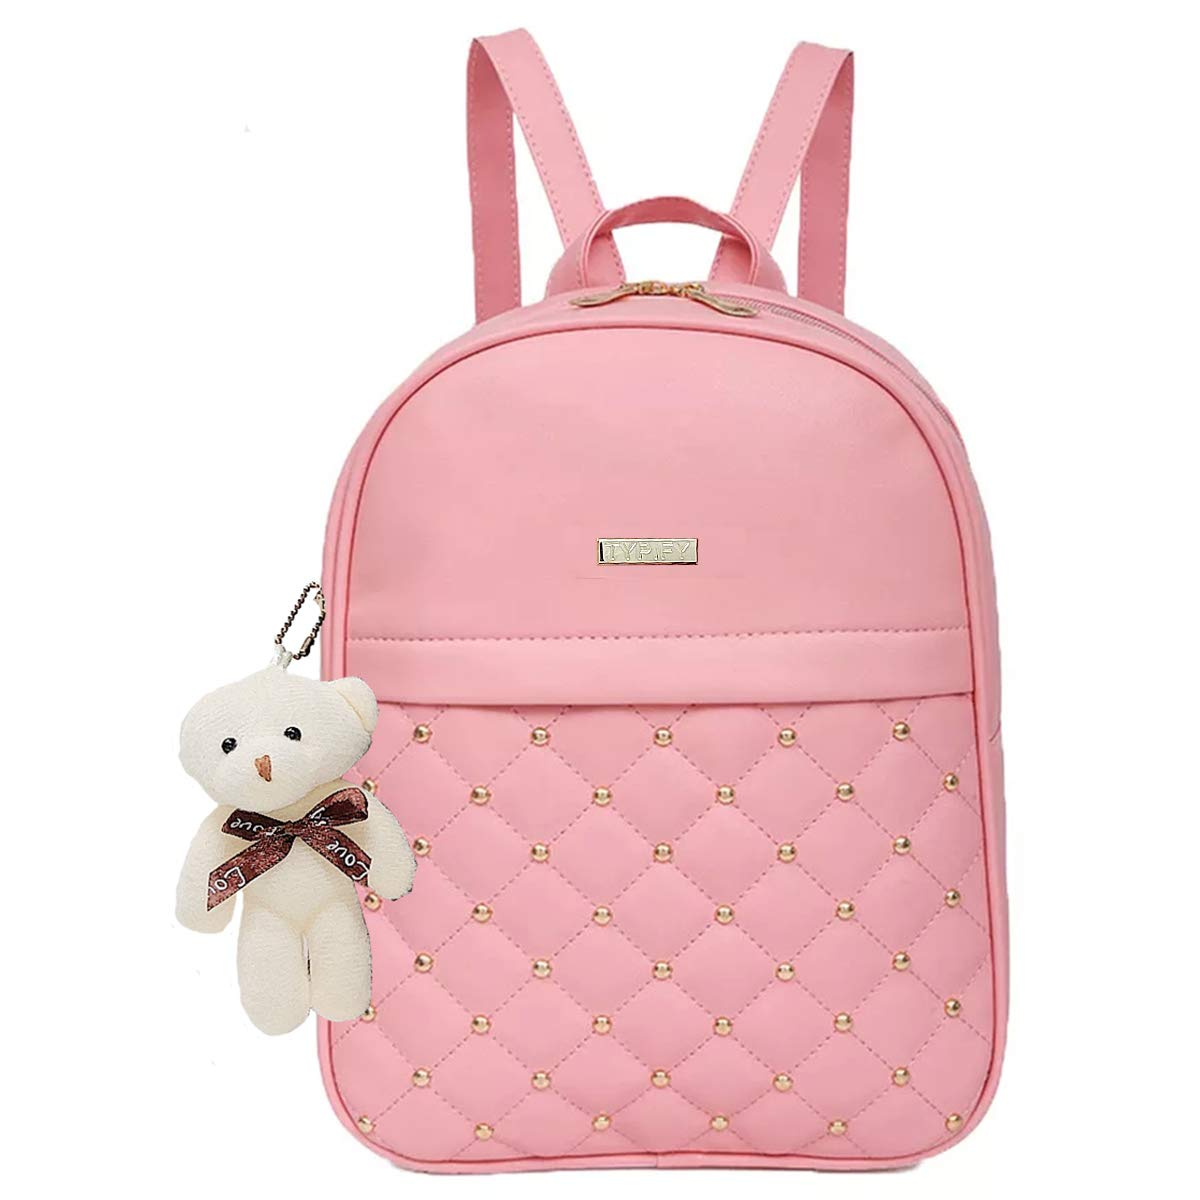 Why Everyone Could Benefit From Wholesale School Bags?